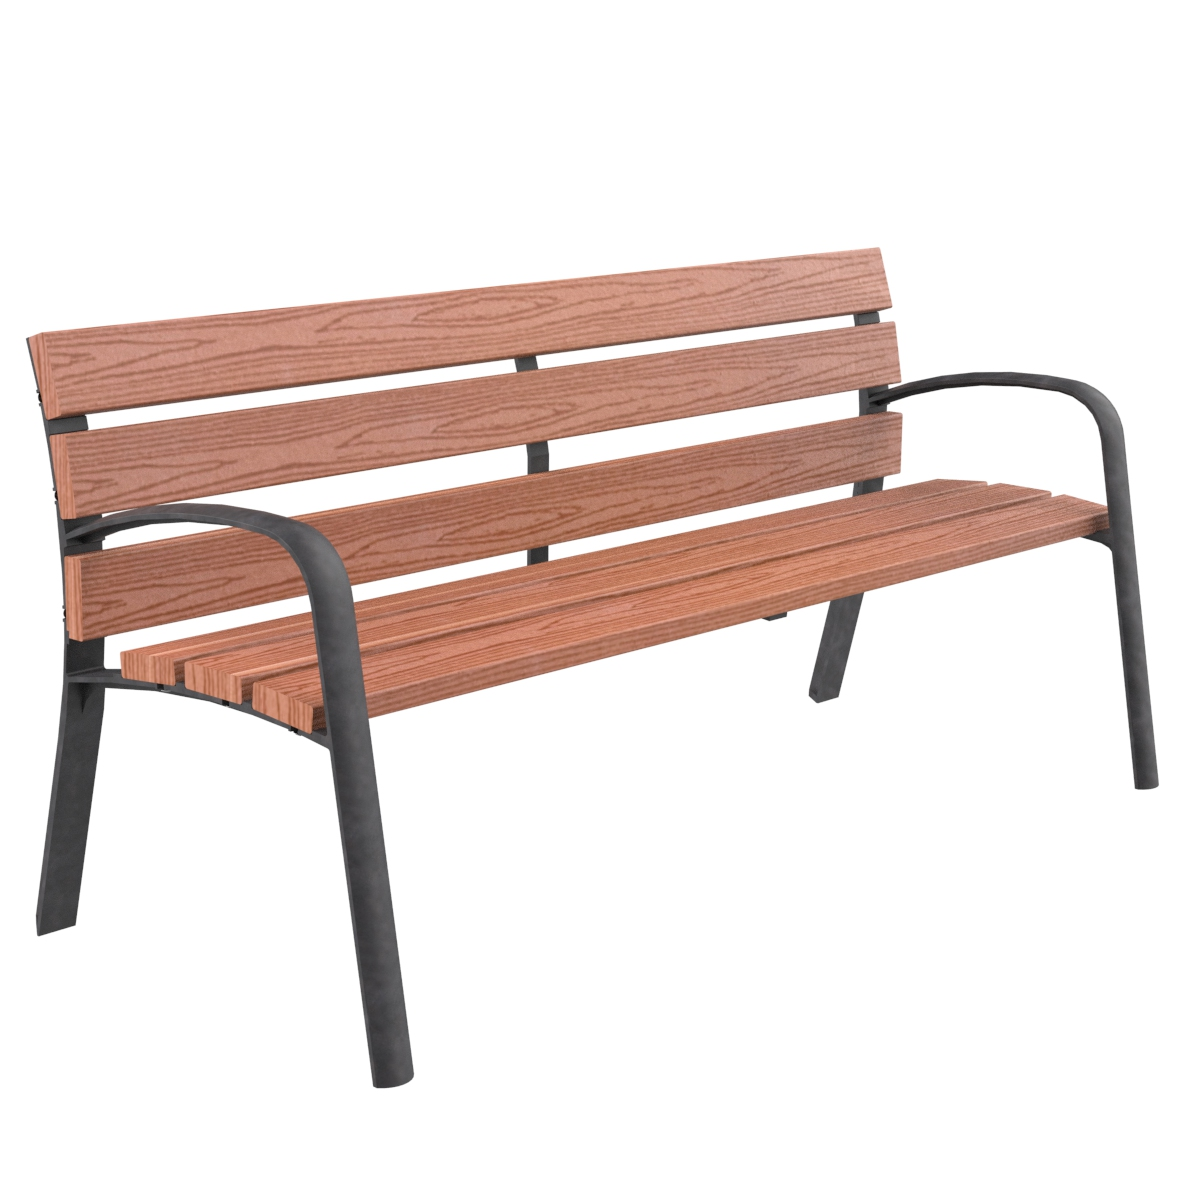 Modo Technique wood bench urban furniture parks and gardens C-106MT